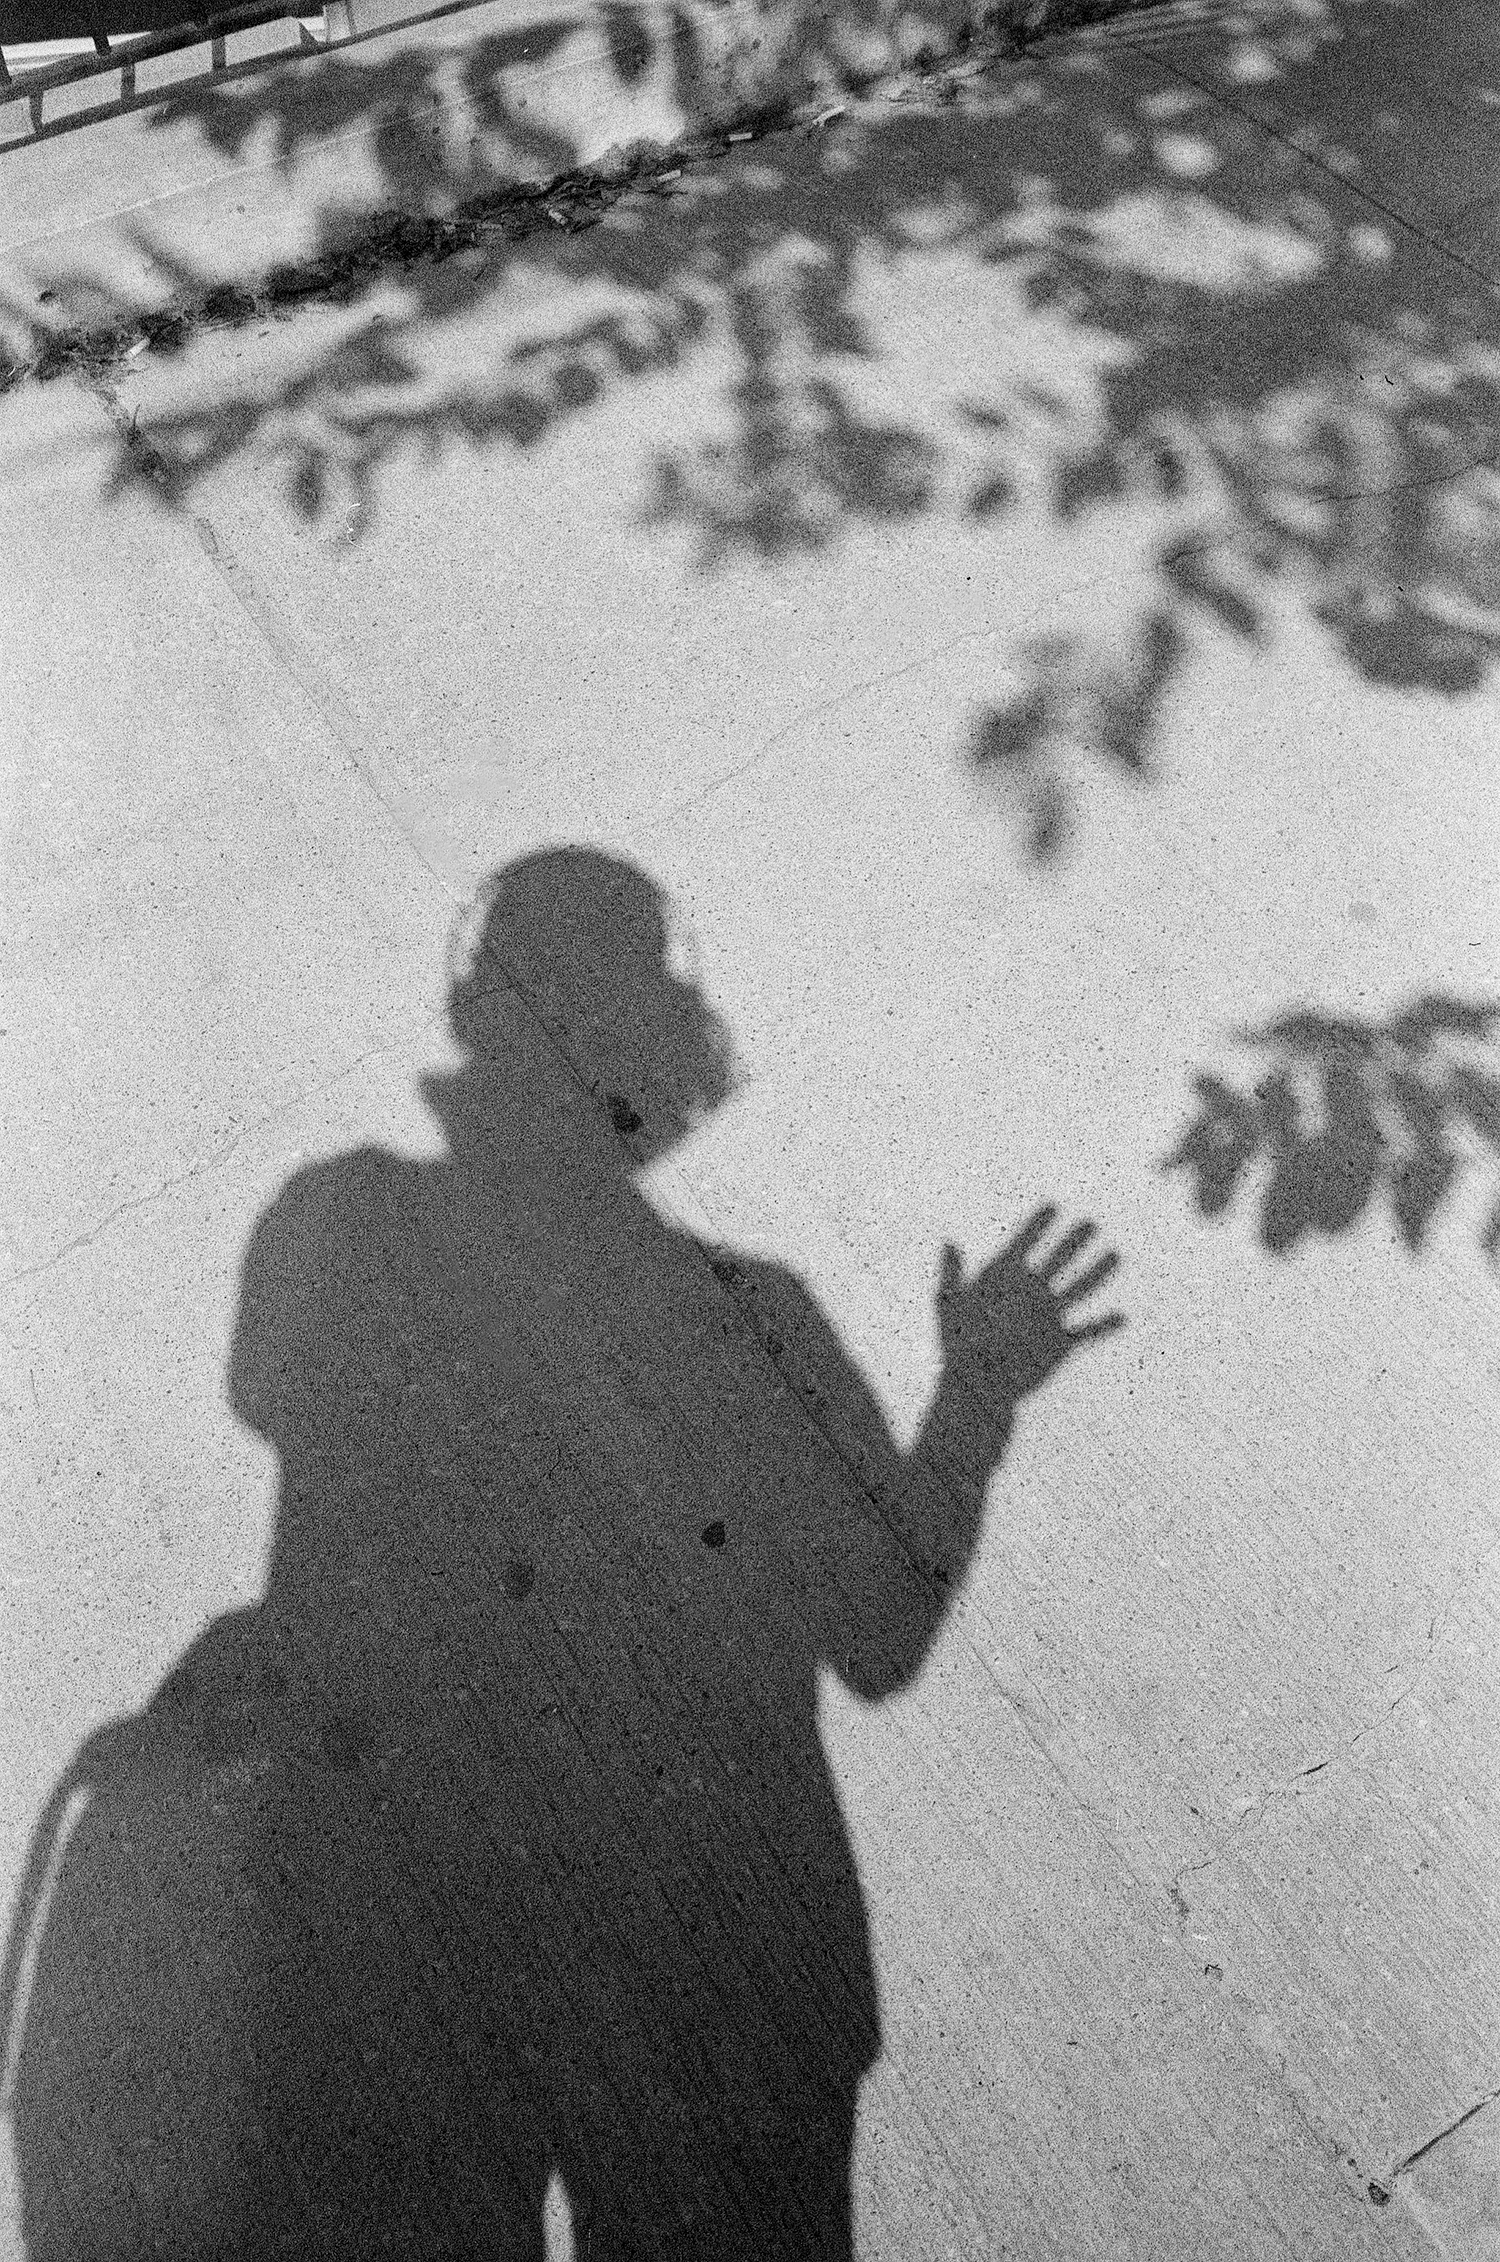 75-Self-Portrait-in-the-shadows.jpg